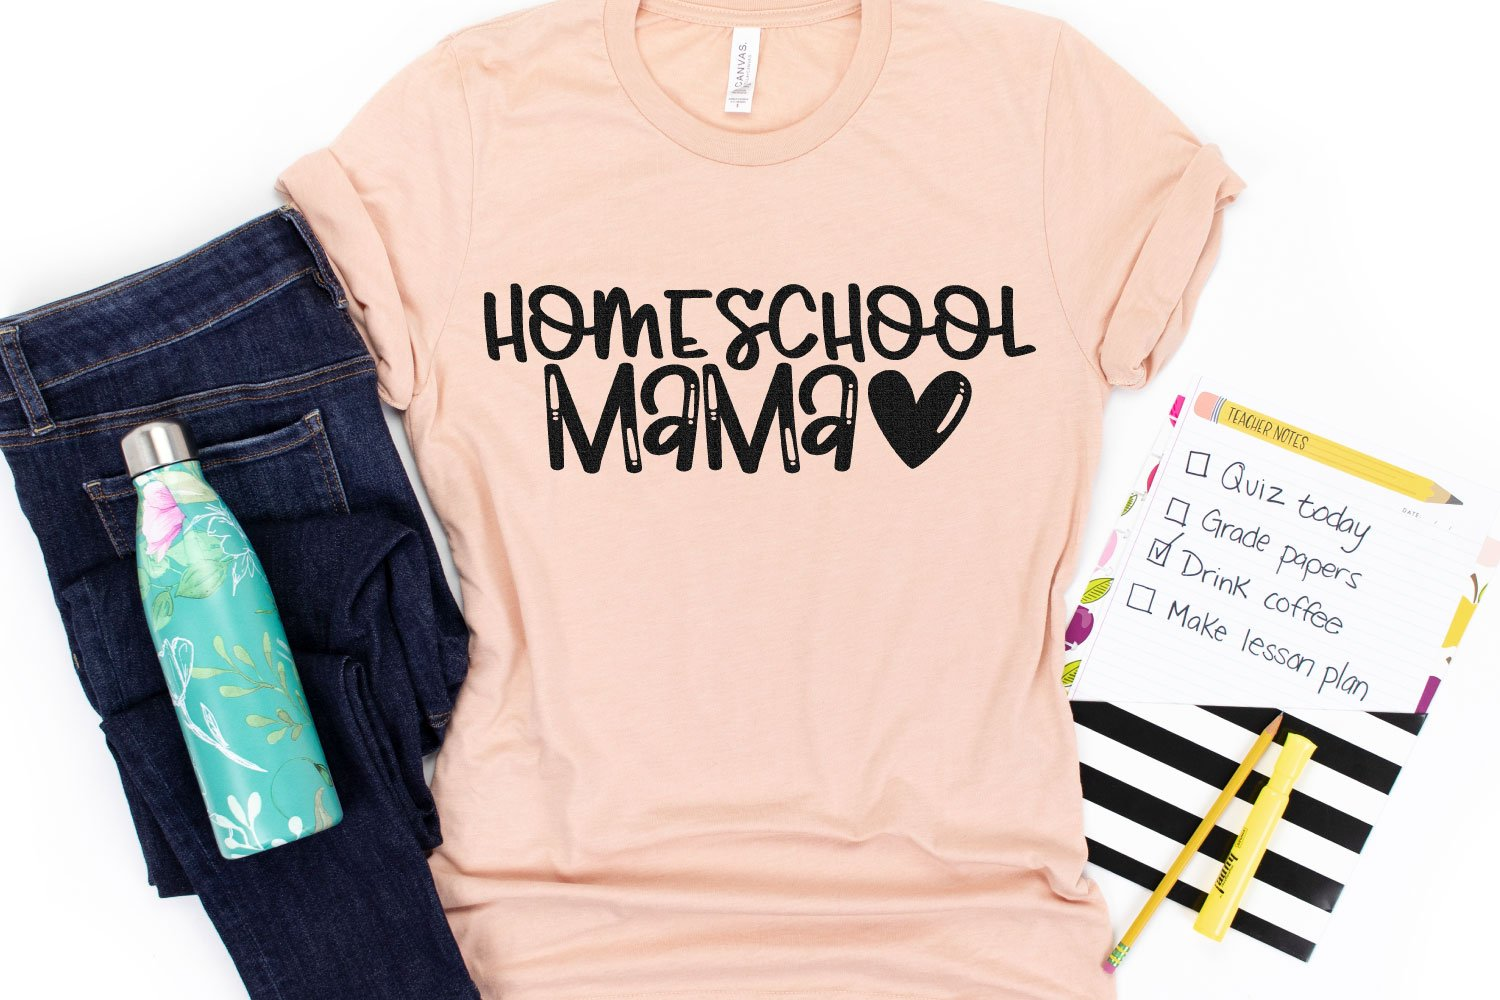 homeschool mama SVG file on shirt